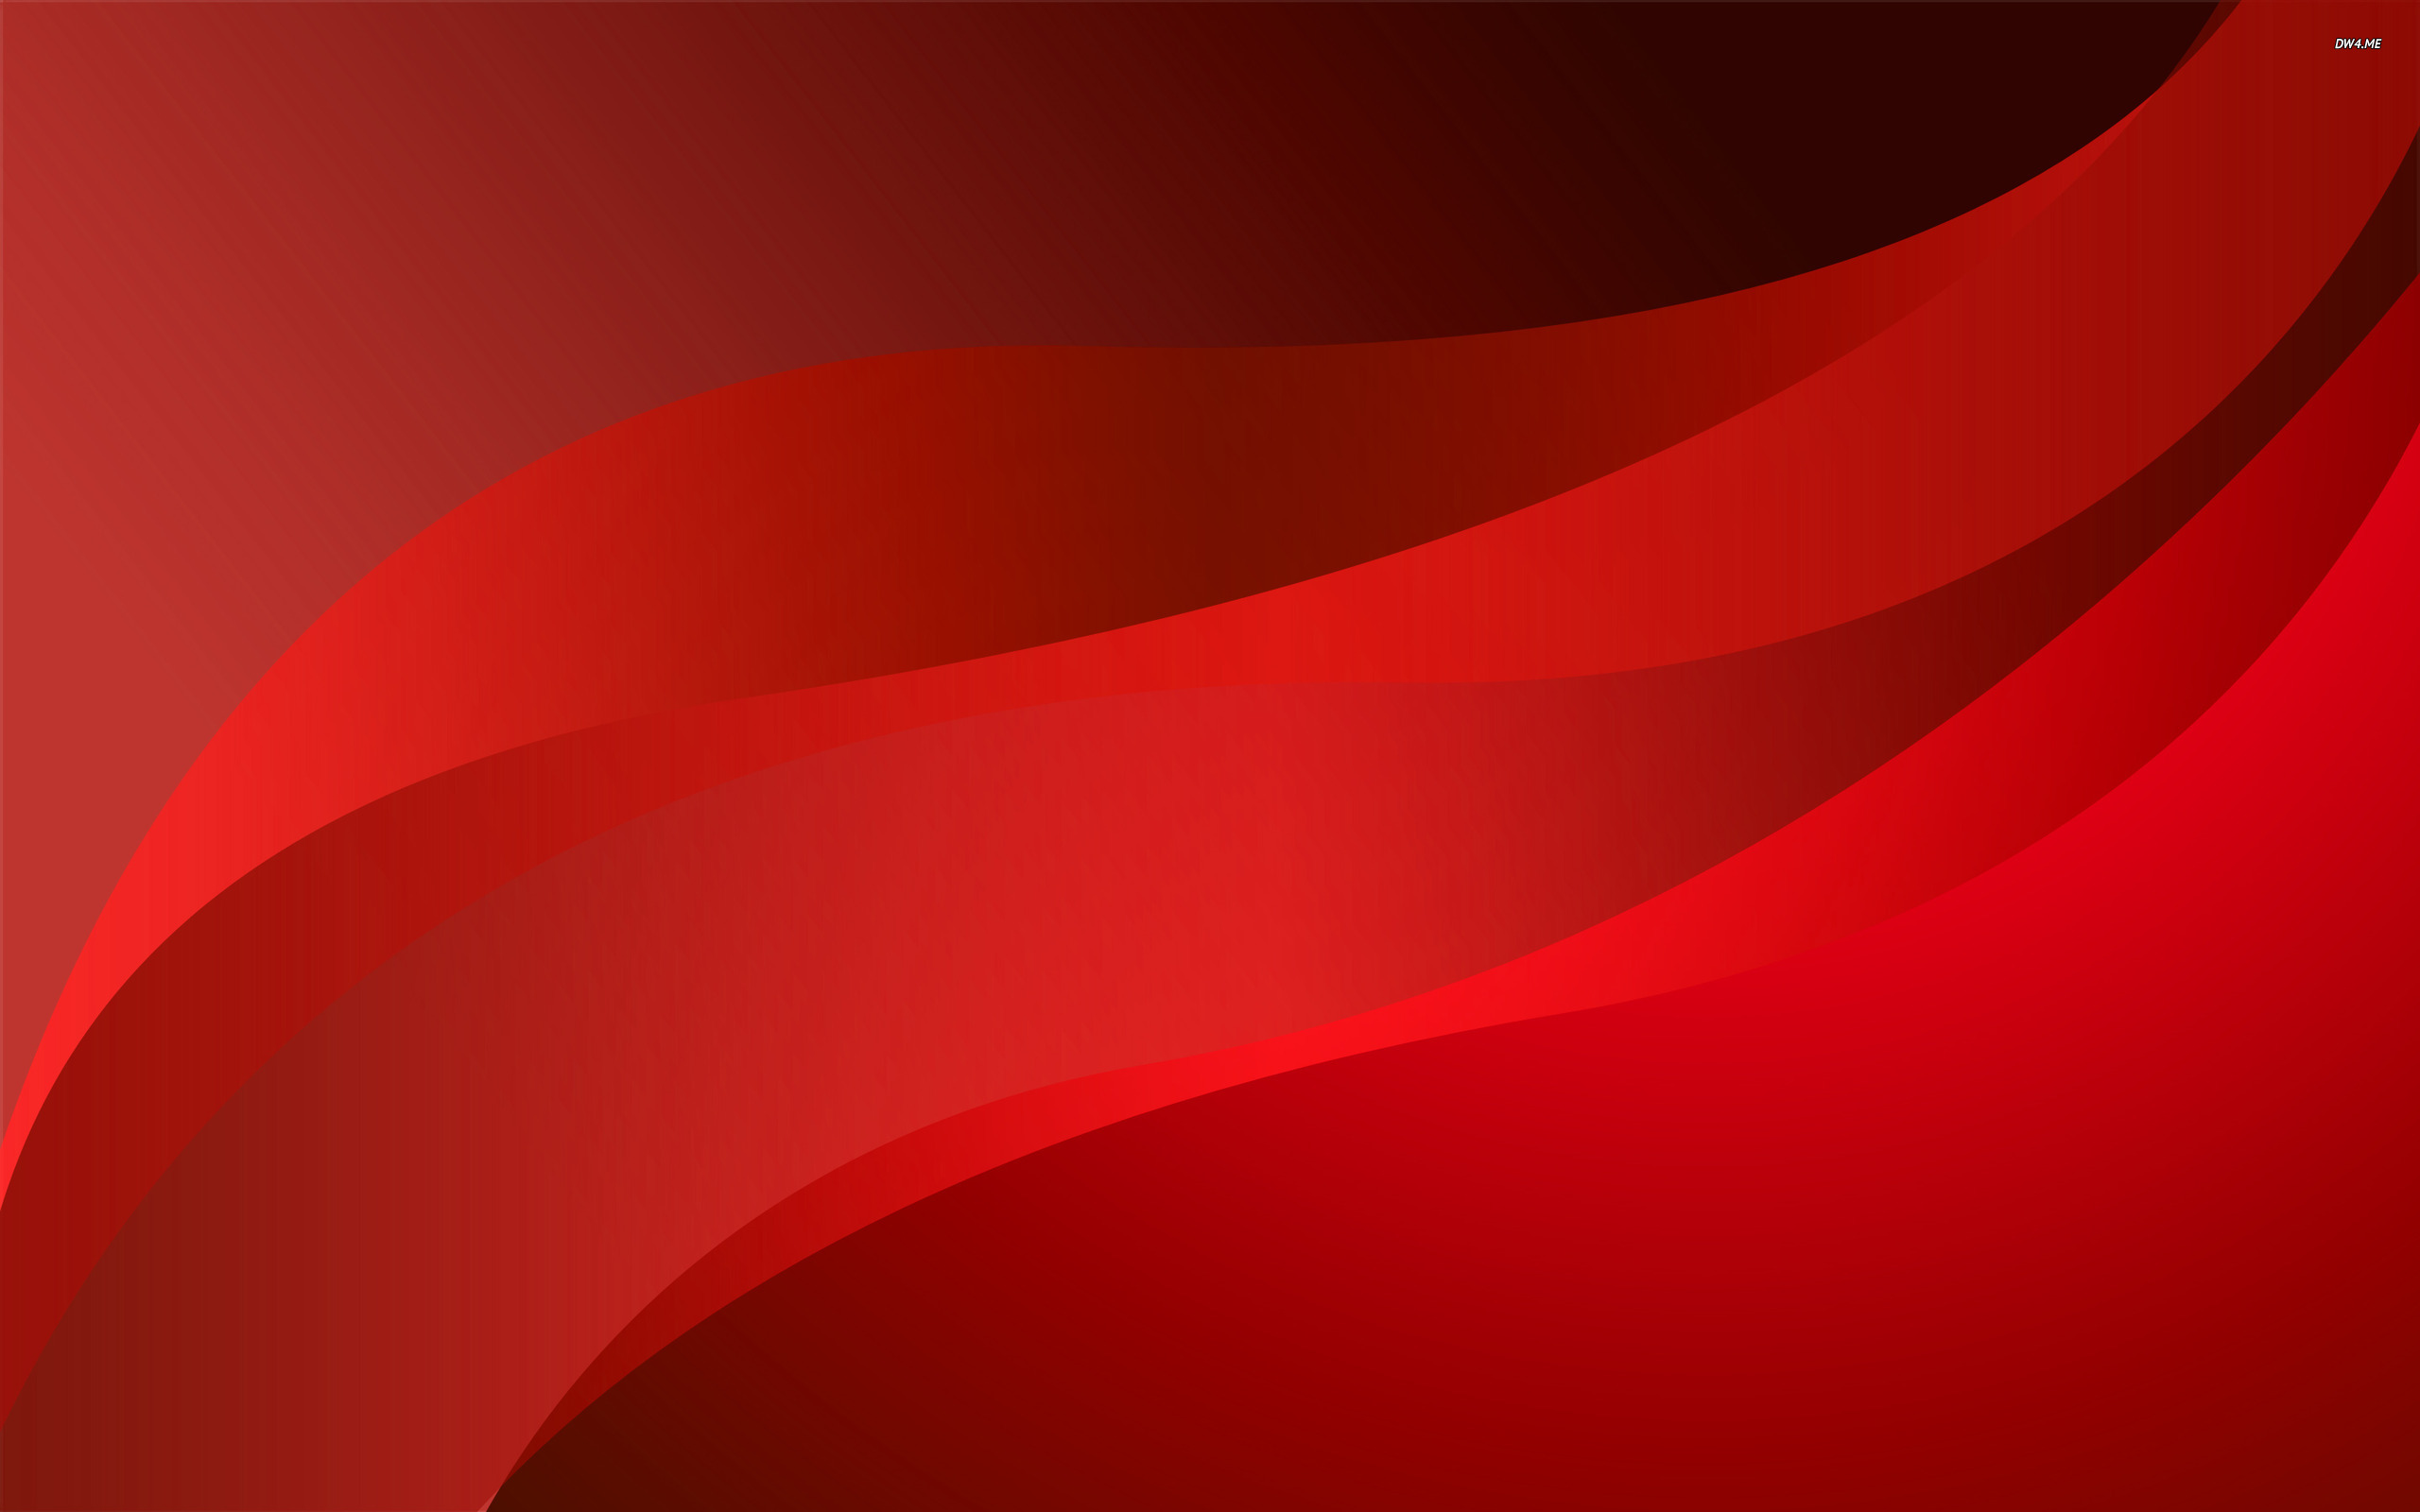 Red curves wallpaper - Abstract wallpapers - #2163